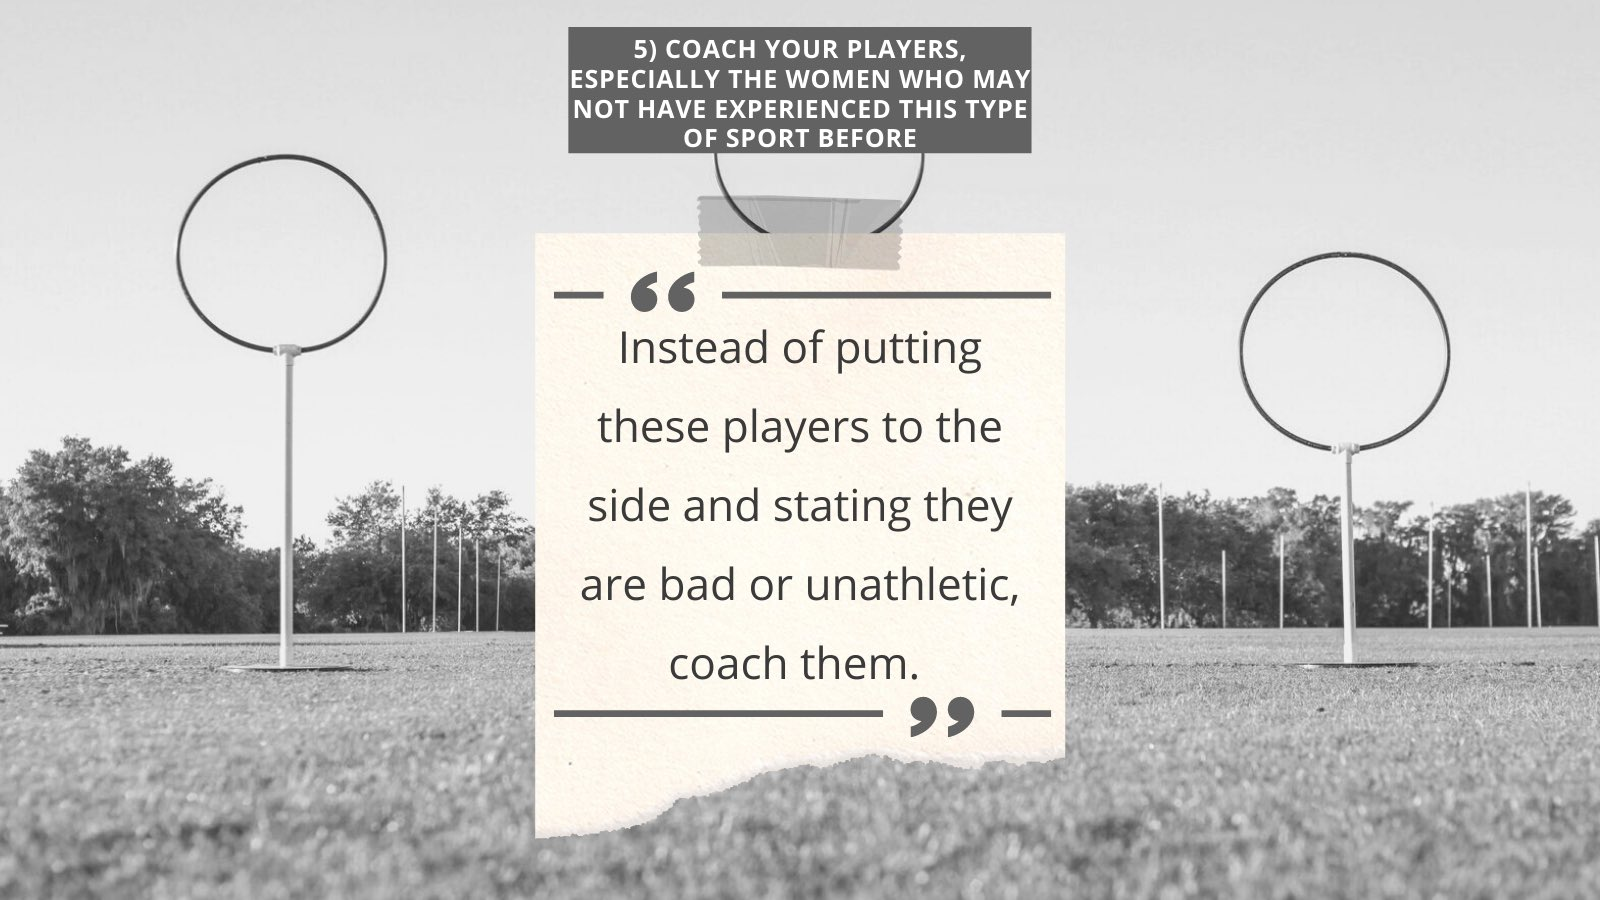 The fifth takeaway is about motivating and coaching players, especially inexperienced women.